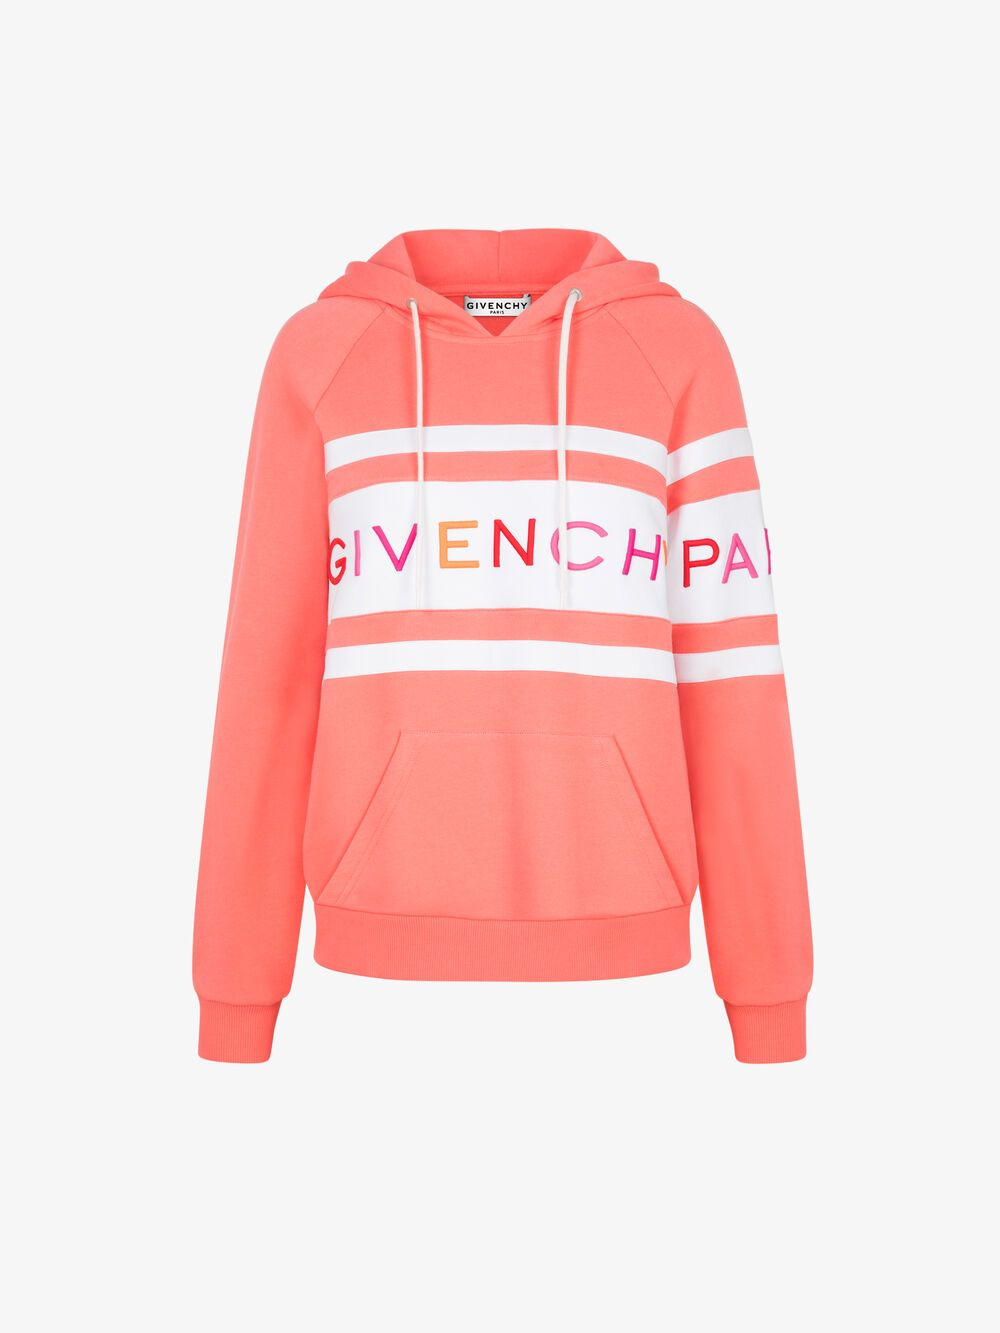 Discover The Lastest Givenchy Sweatshirts Explore Sweatshirts For Women On Givenchy S Official Site Givenchy Hoodie Sweatshirts Hoodie Logo [ 1333 x 1000 Pixel ]